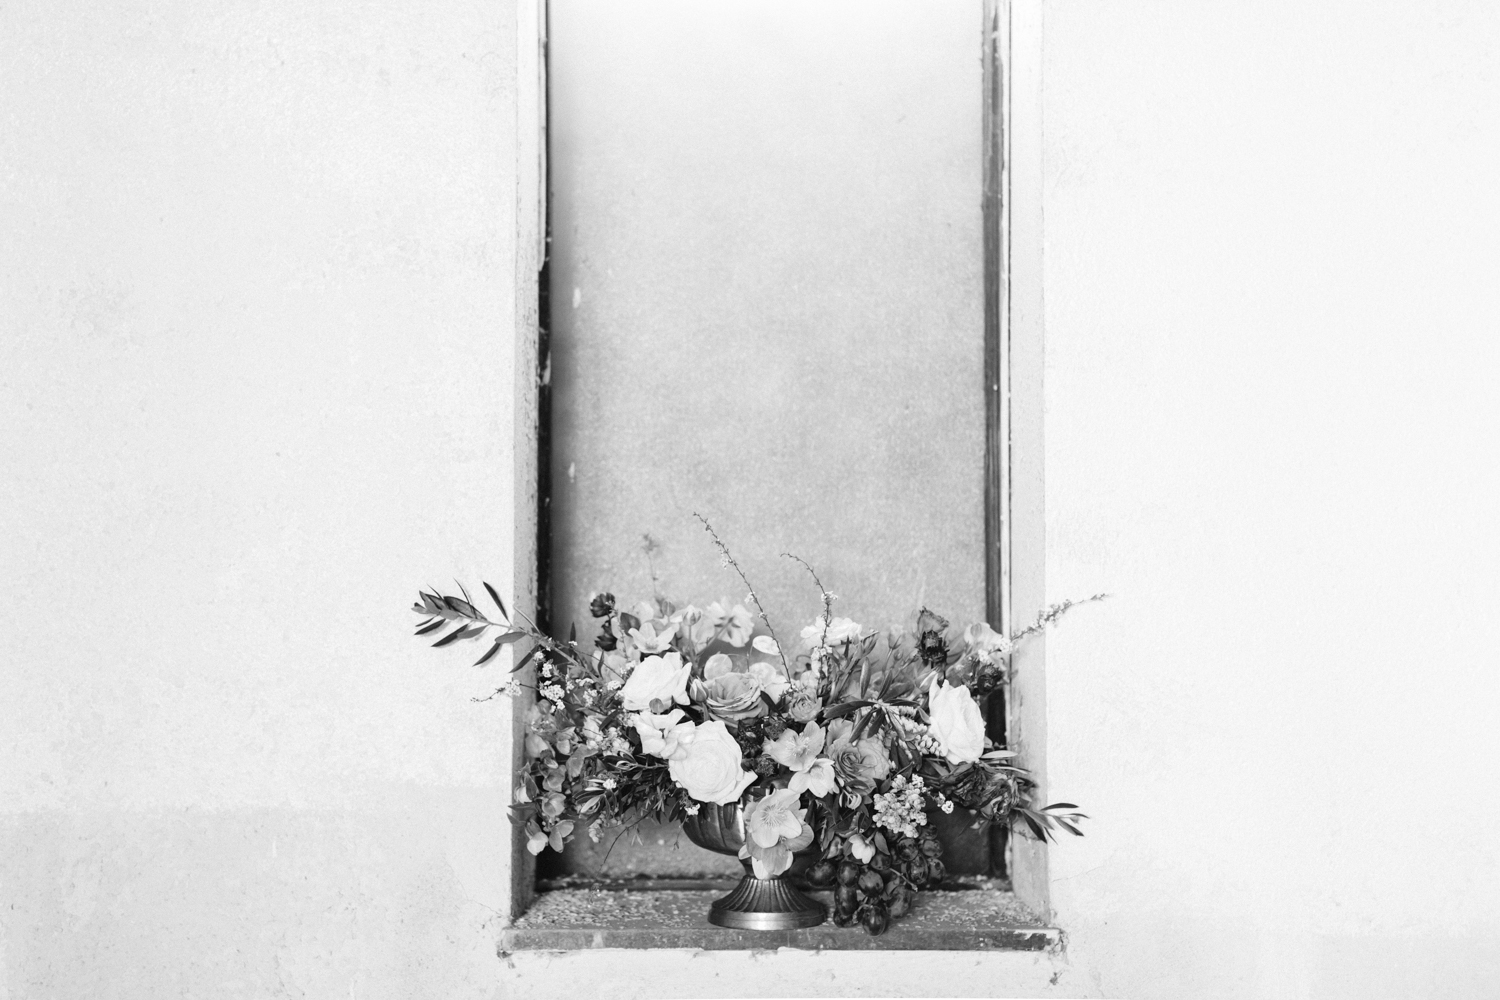 A floral arrangement rests in the window of an abandoned cathedral at a destination wedding